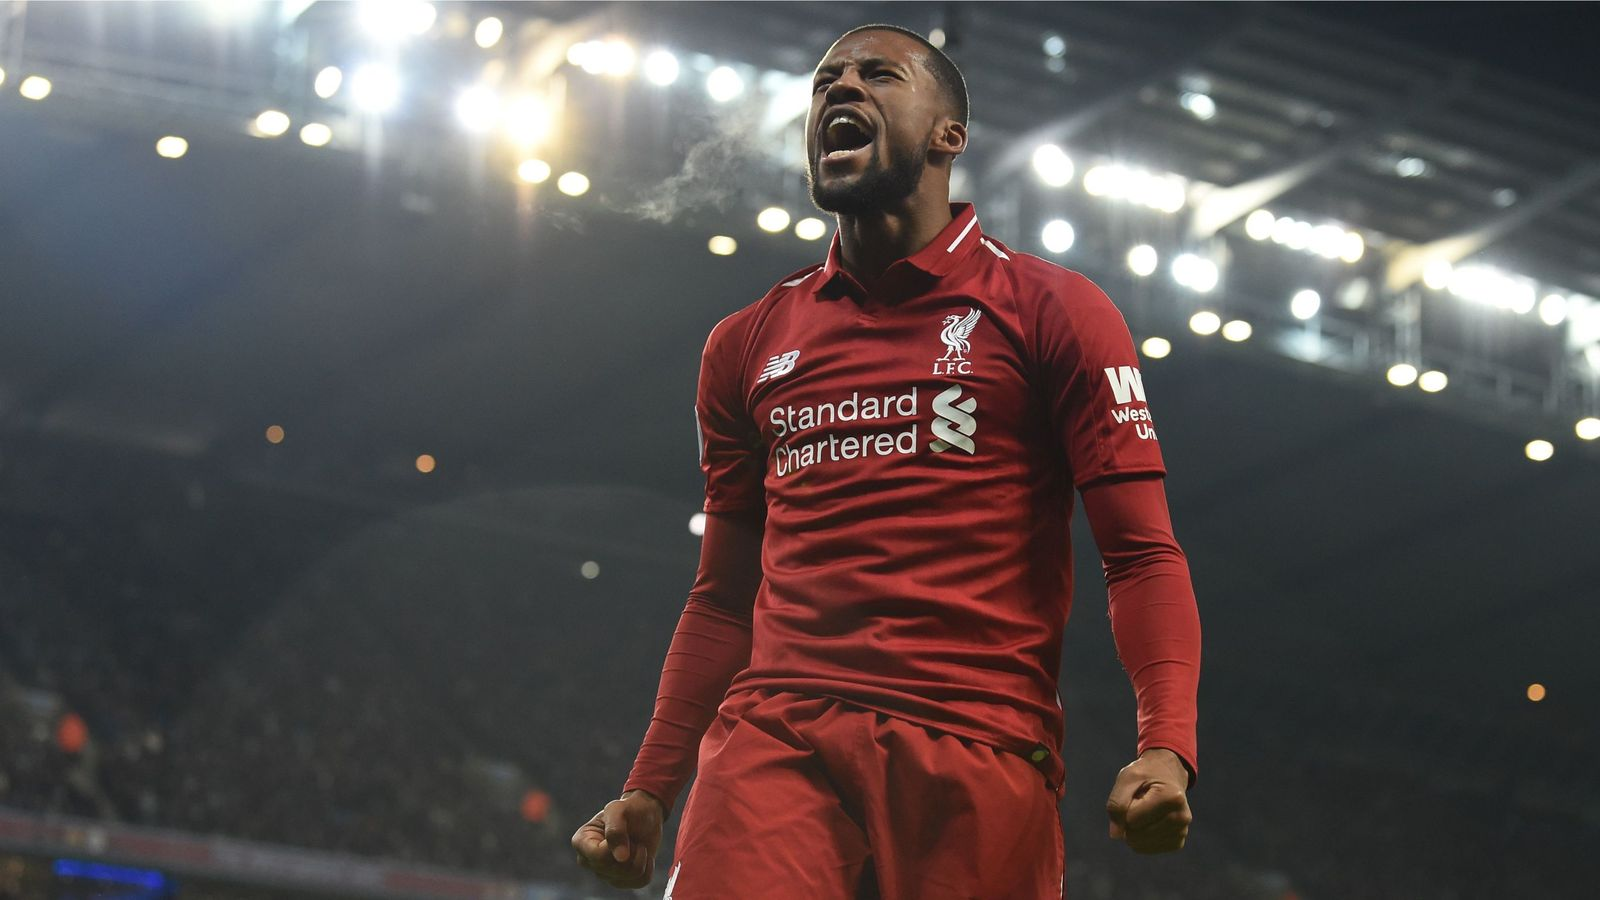 Liverpool's Georginio Wijnaldum says last season proves the club has evolved